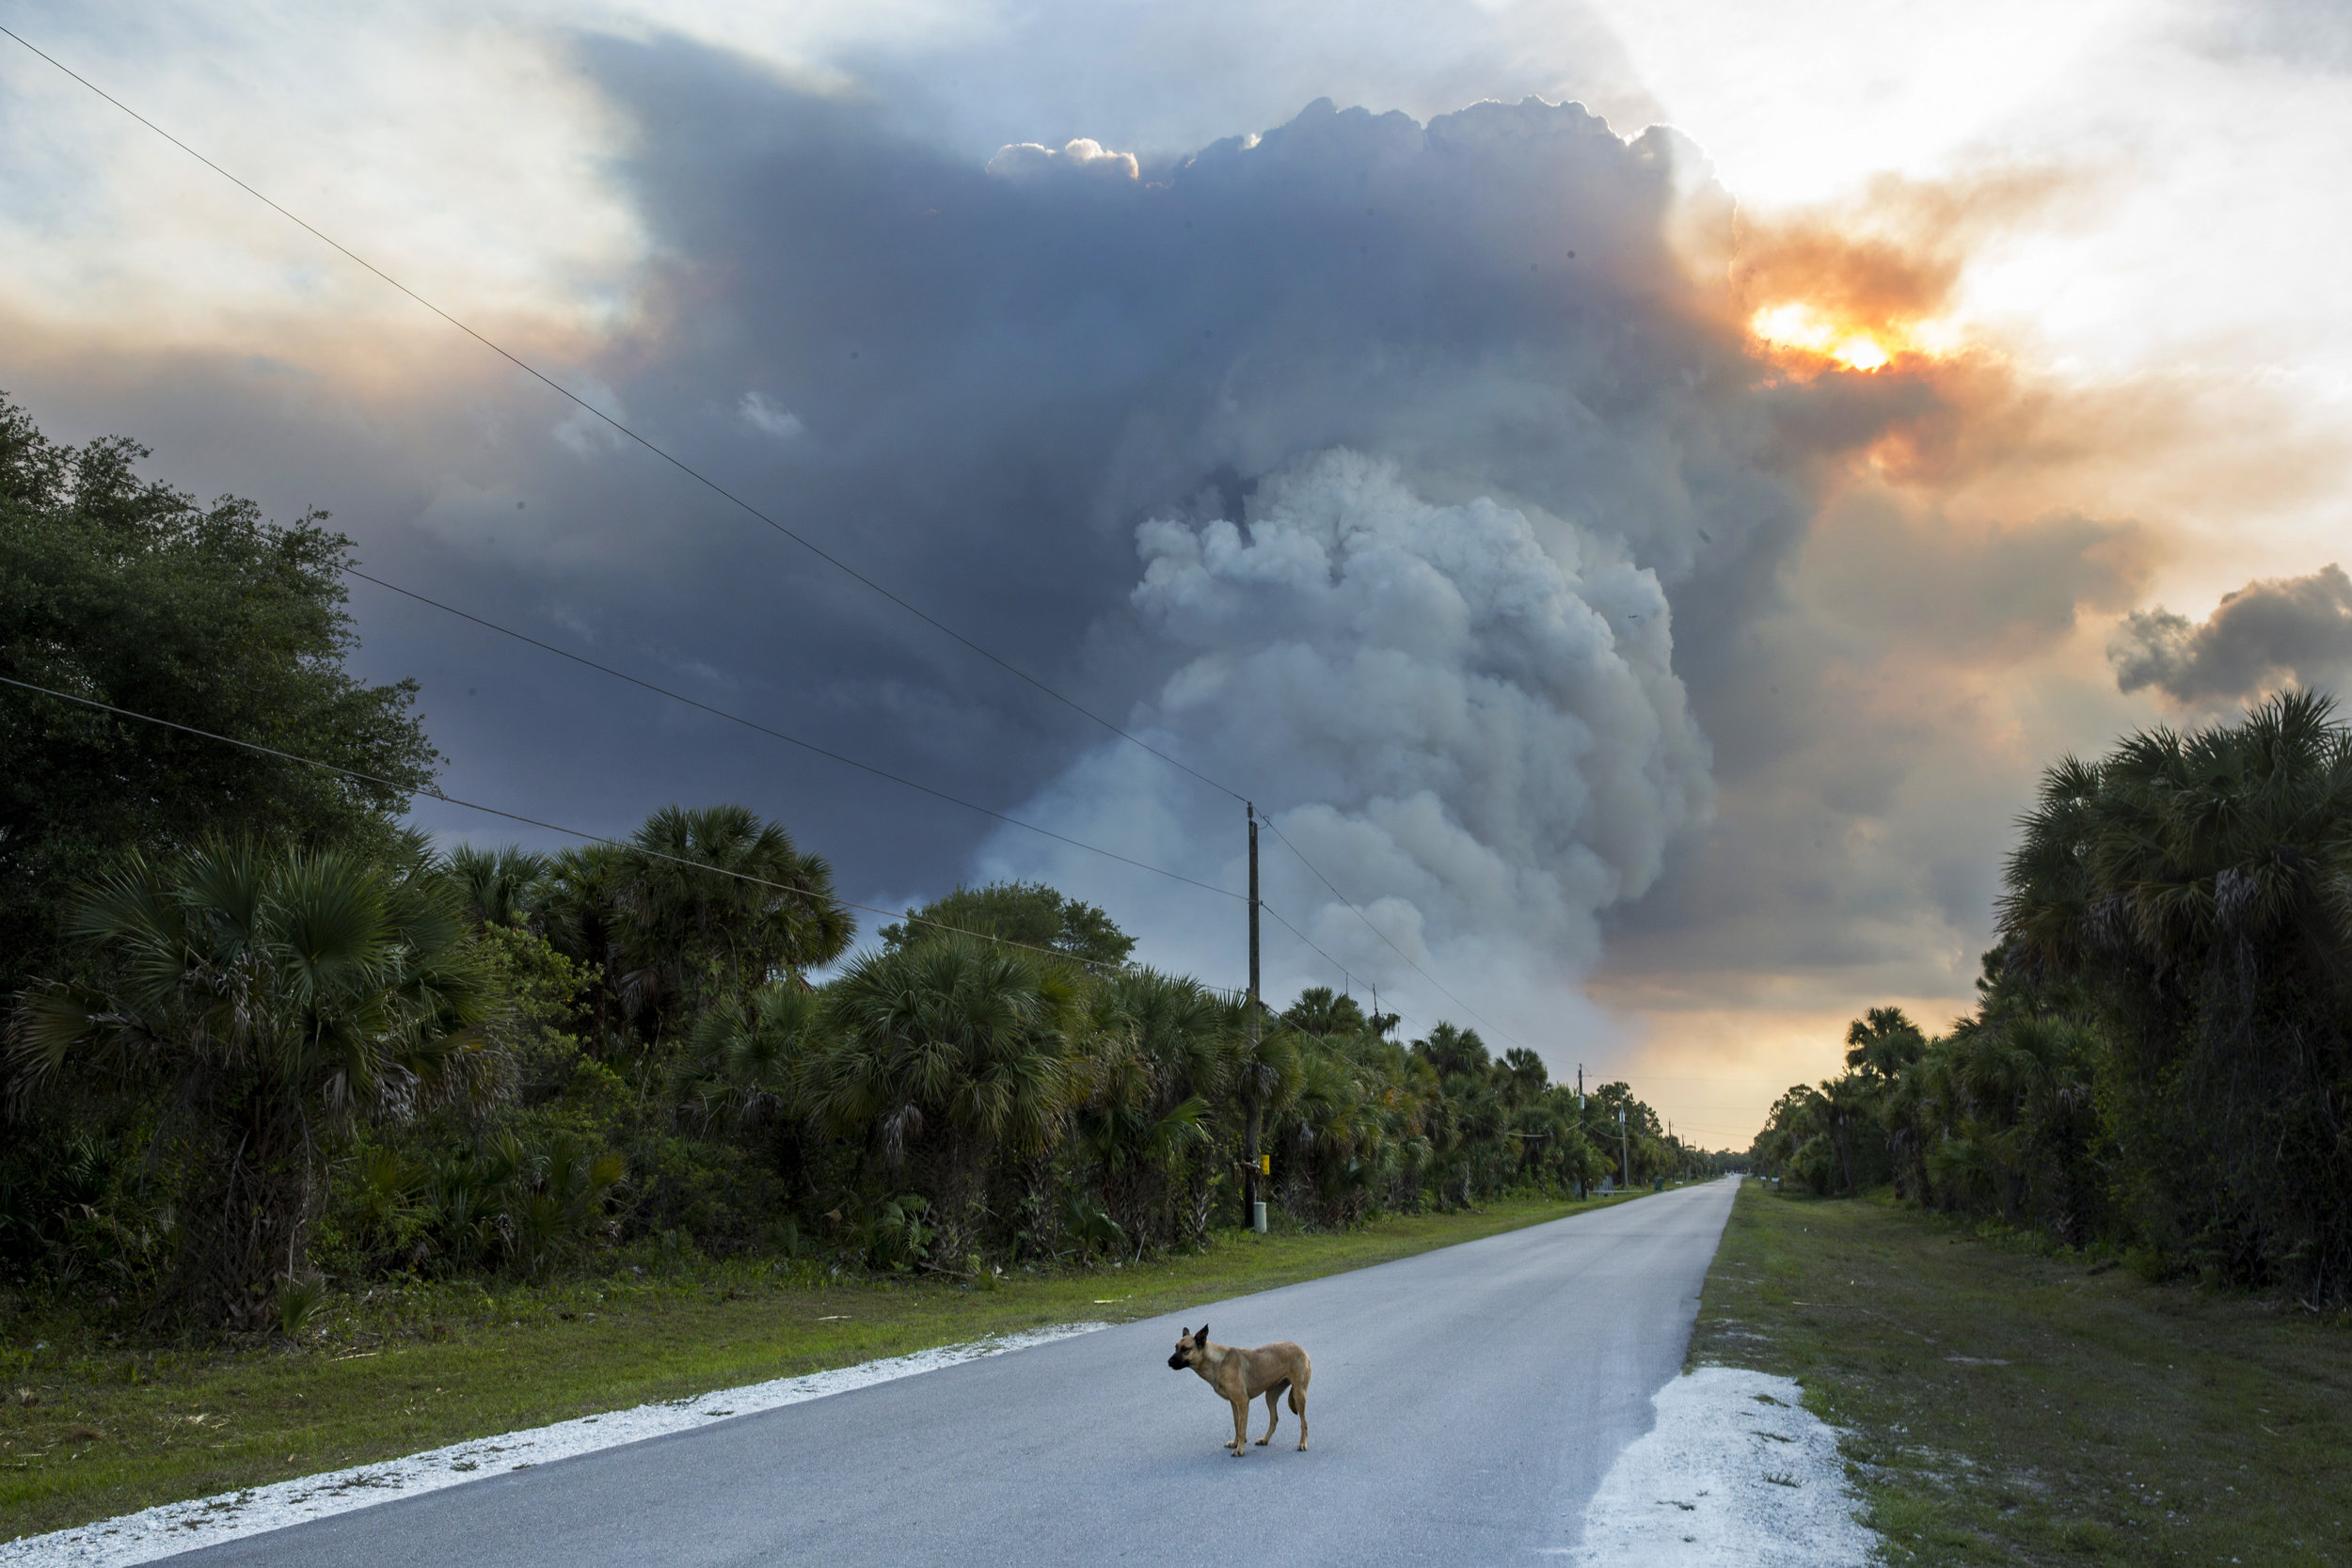 A brush fire burns near Frangipani Avenue in Naples on Thursday, April 20, 2017. Over the course of four days, the blaze scorched a total of 7,500 acres, injured one person and damaged five structures.